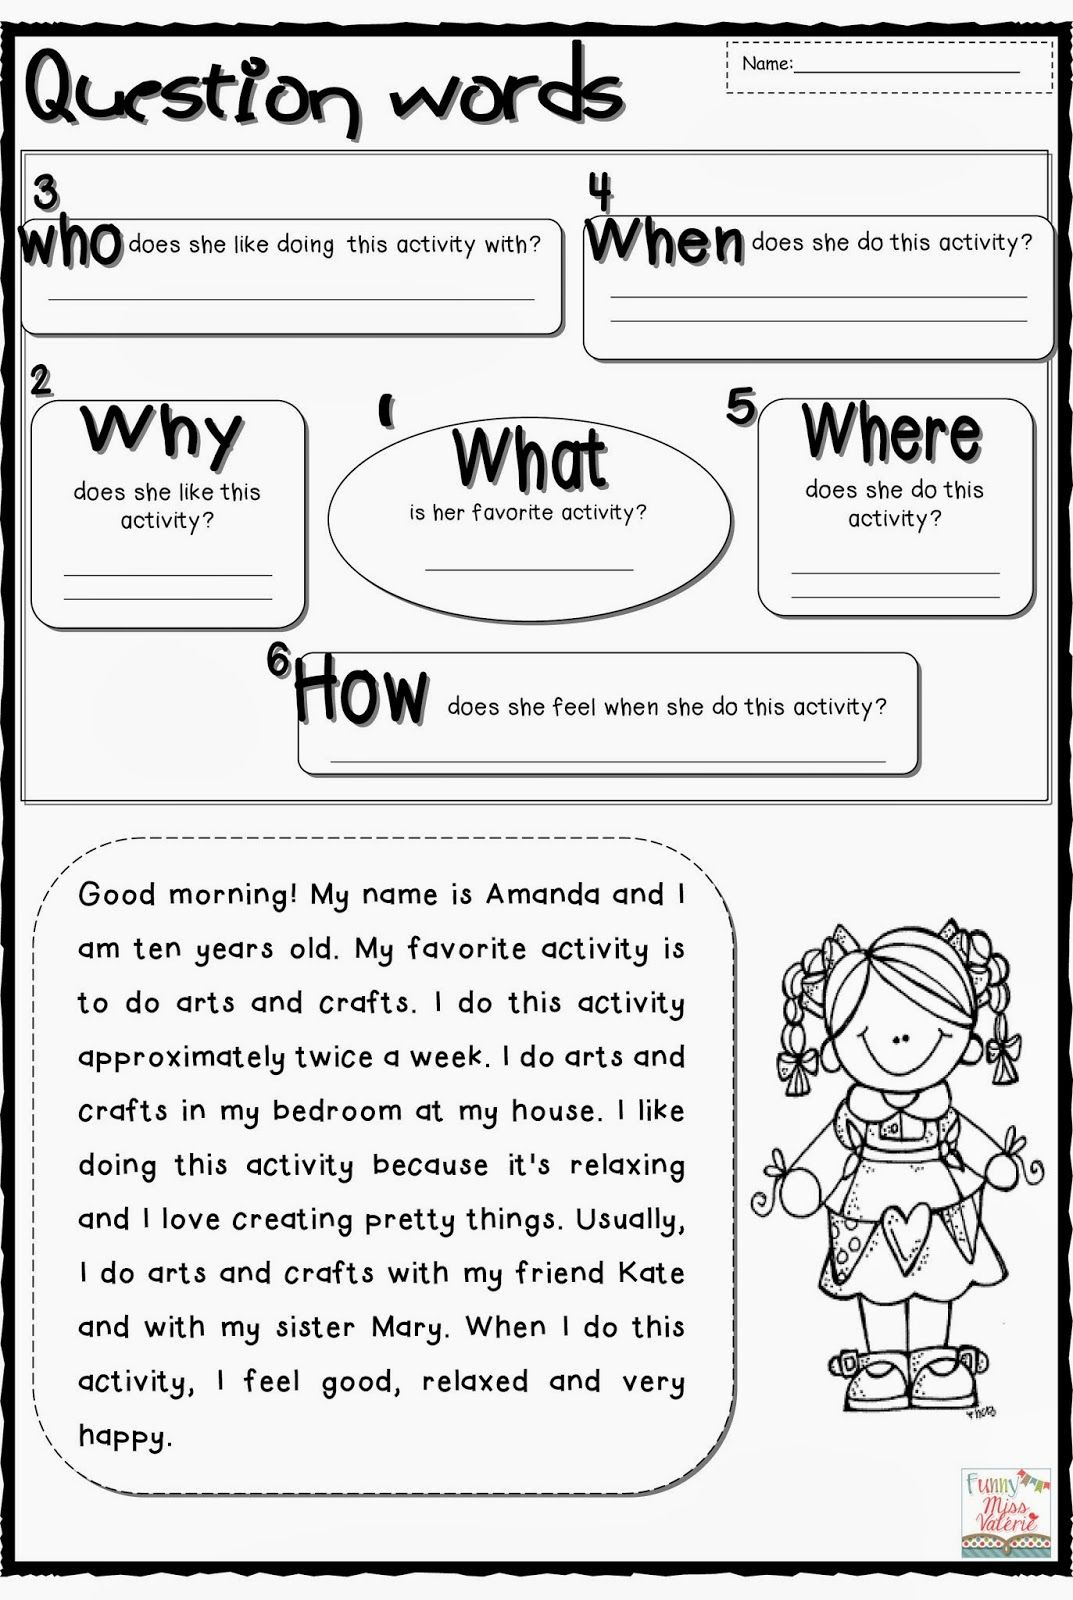 hight resolution of all-students-first-grade-worksheets-gallery-photos-my-favorite-activity…    Reading comprehension lessons